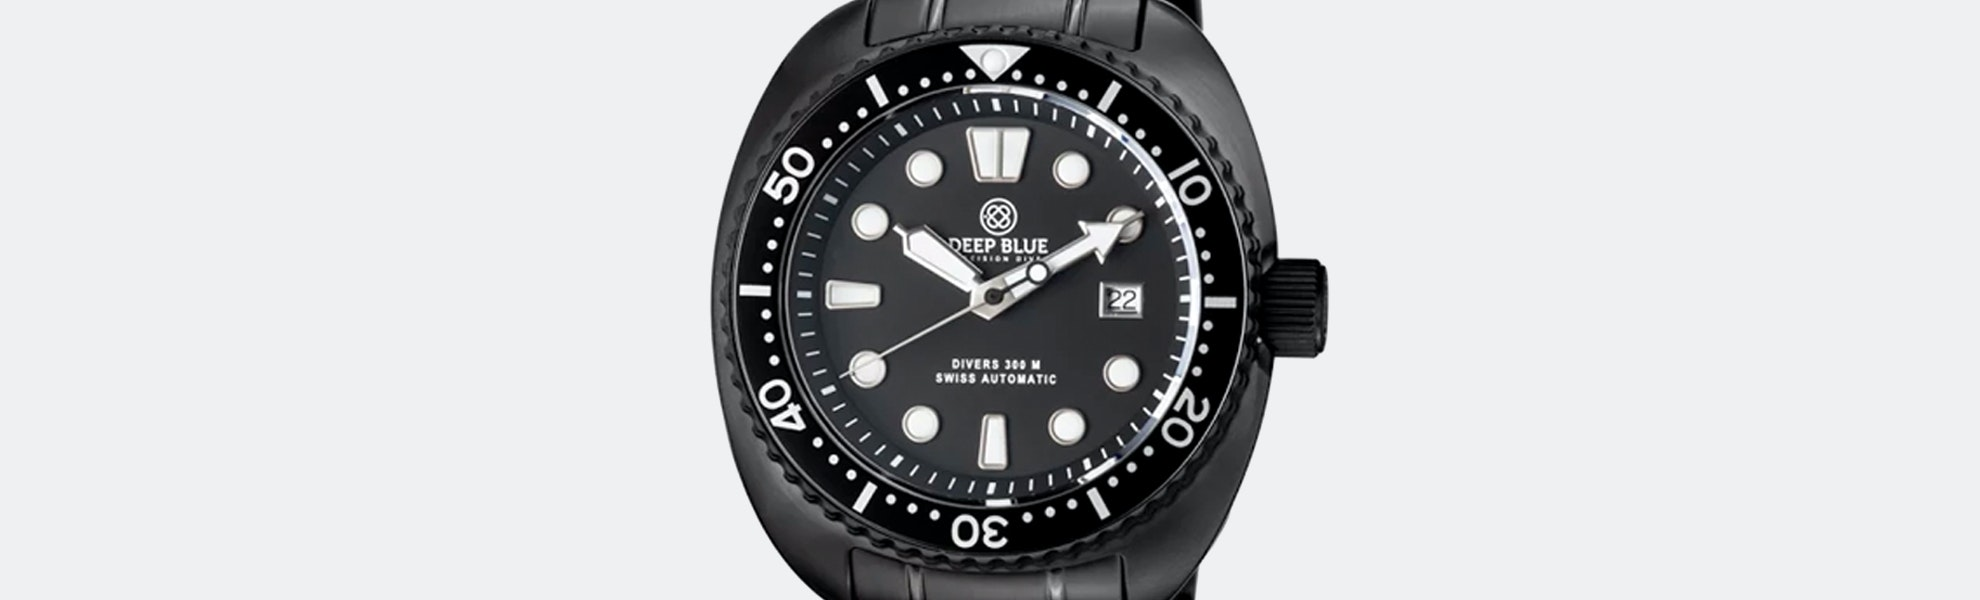 Deep Blue Military Diver 300 Automatic Watch